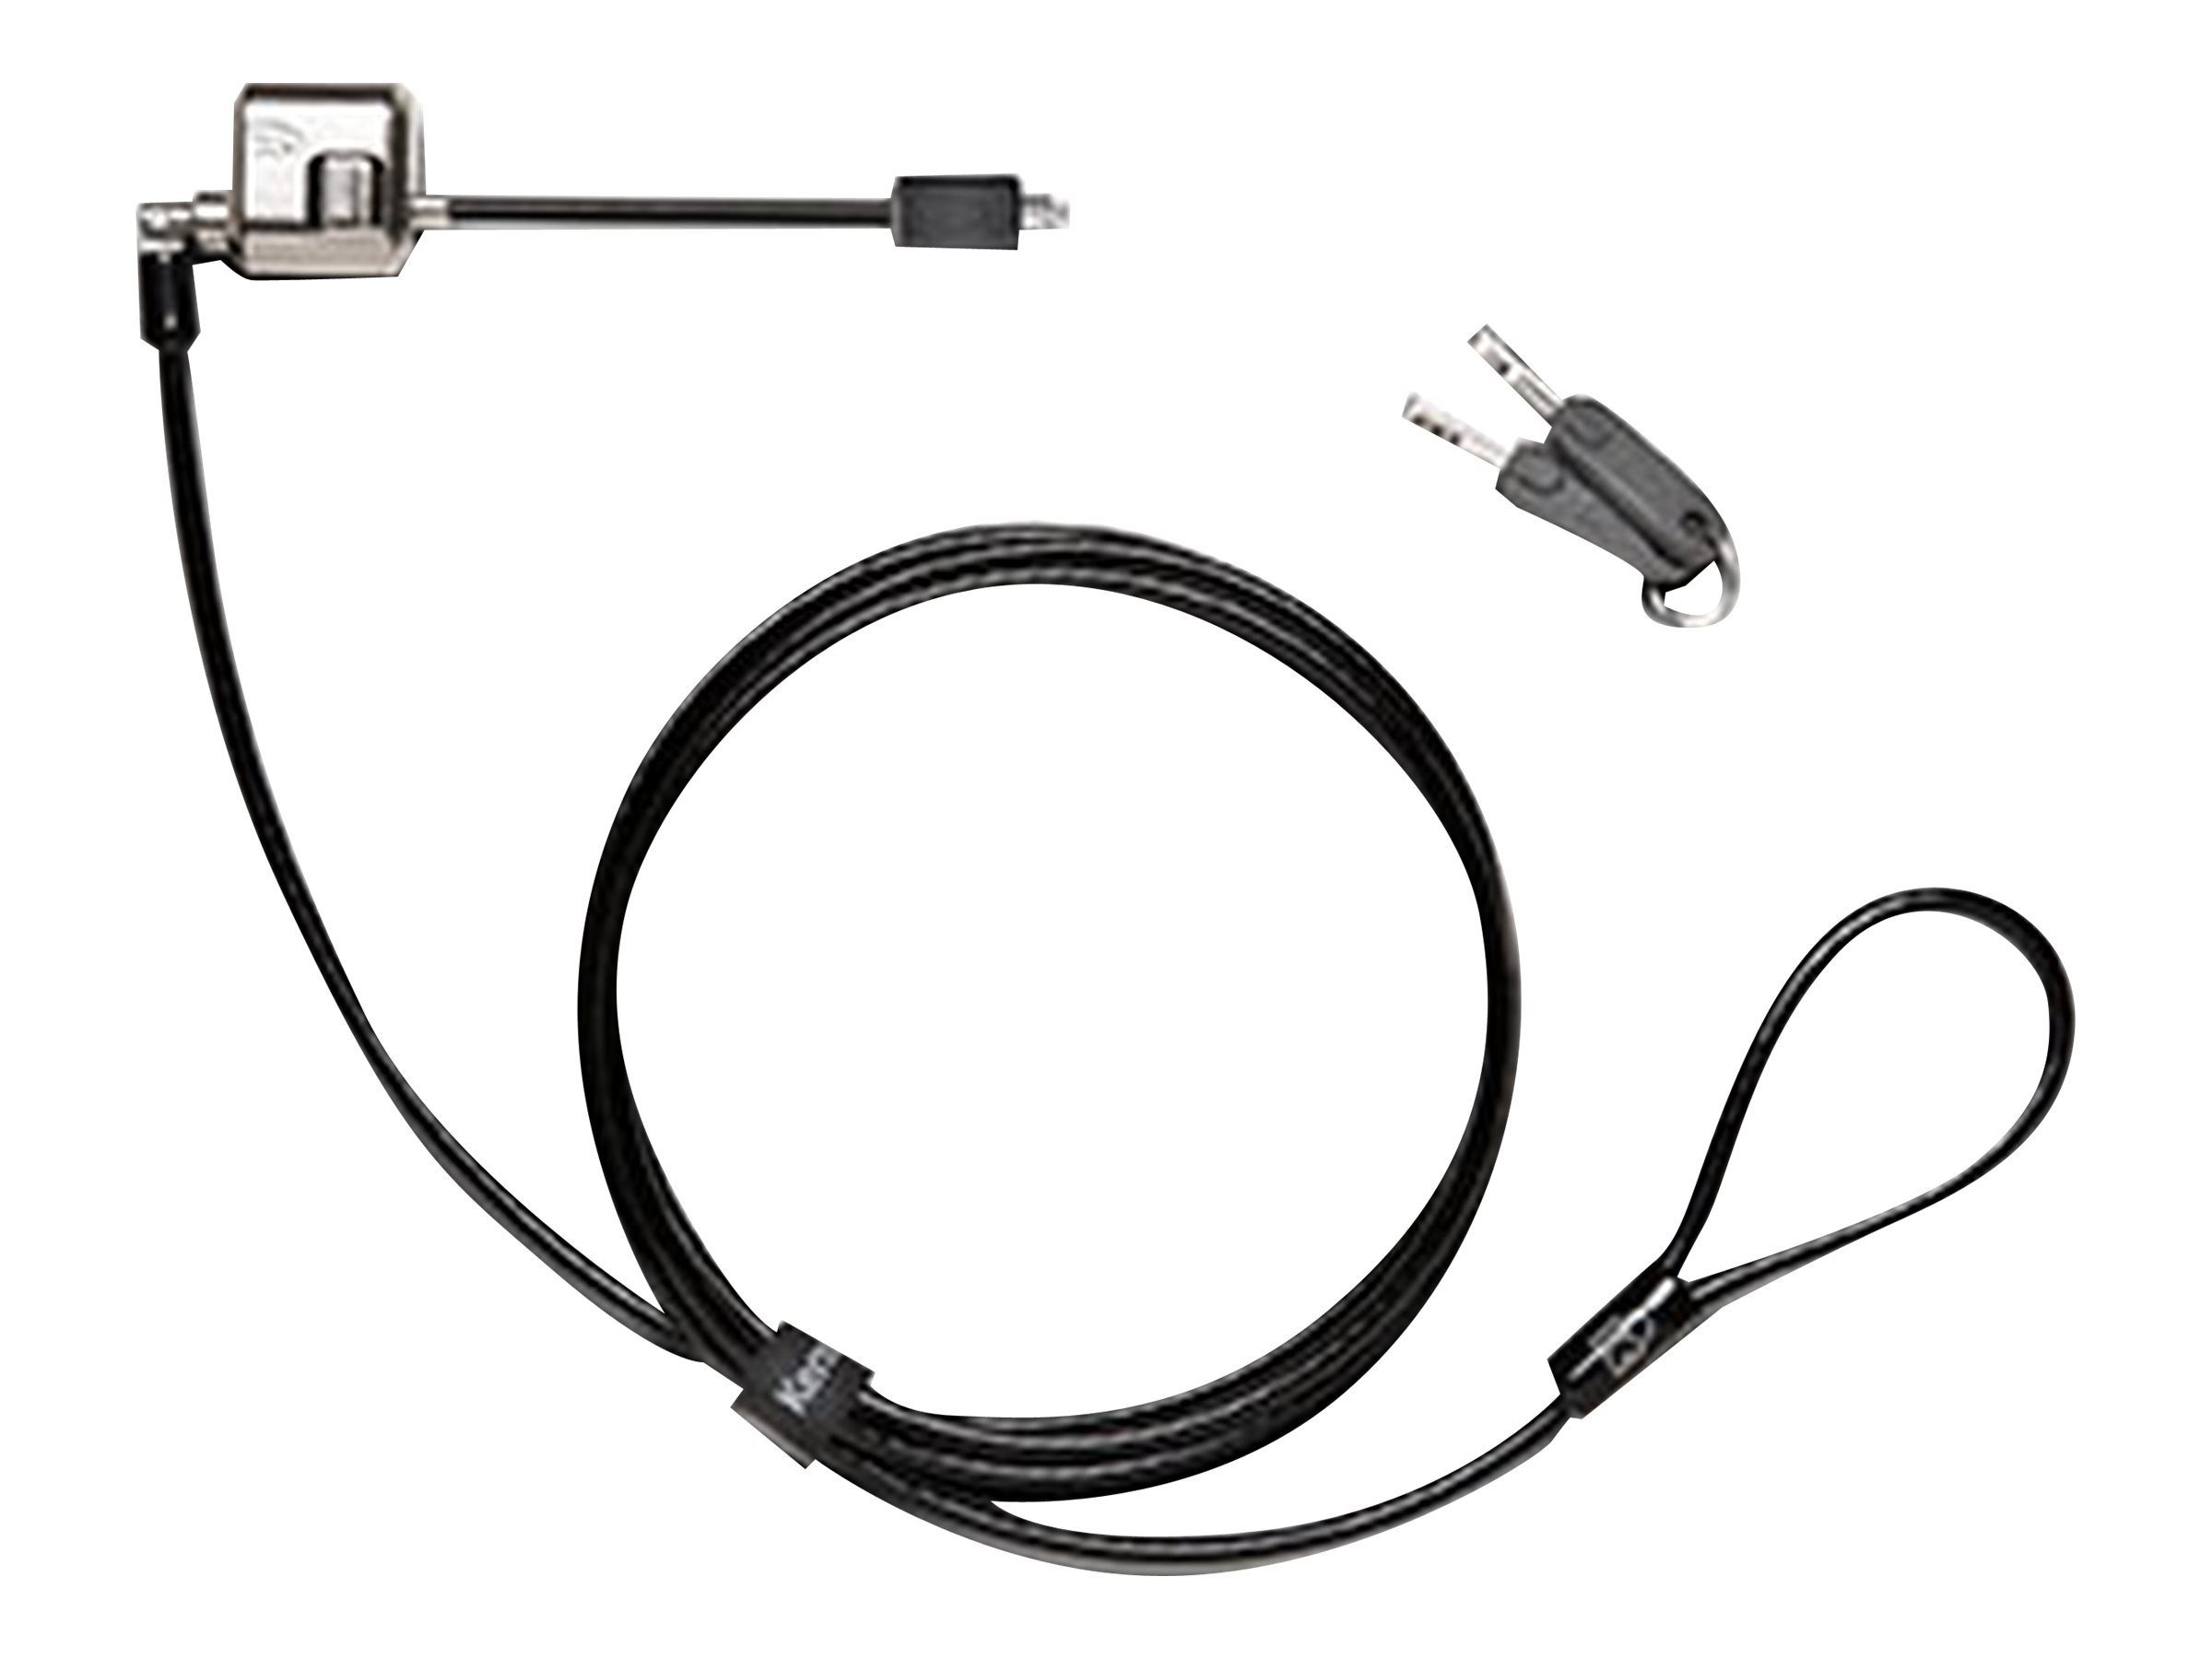 Kensington MiniSaver Mobile Lock notebook locking cable